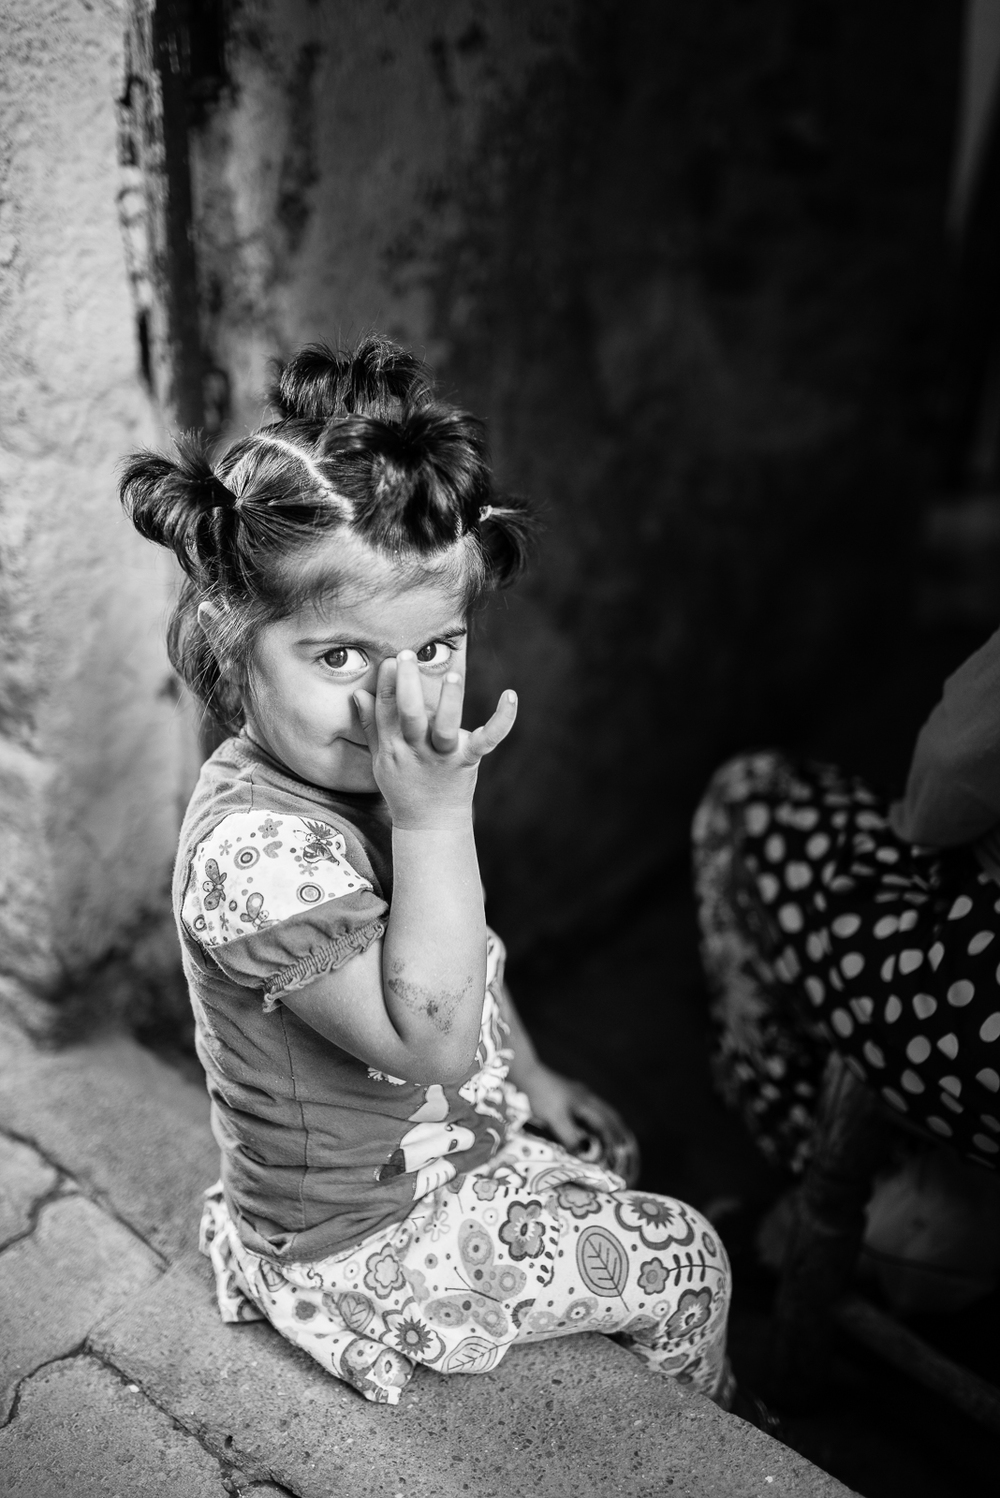 Little girl in Diyaebakir (Turkey)